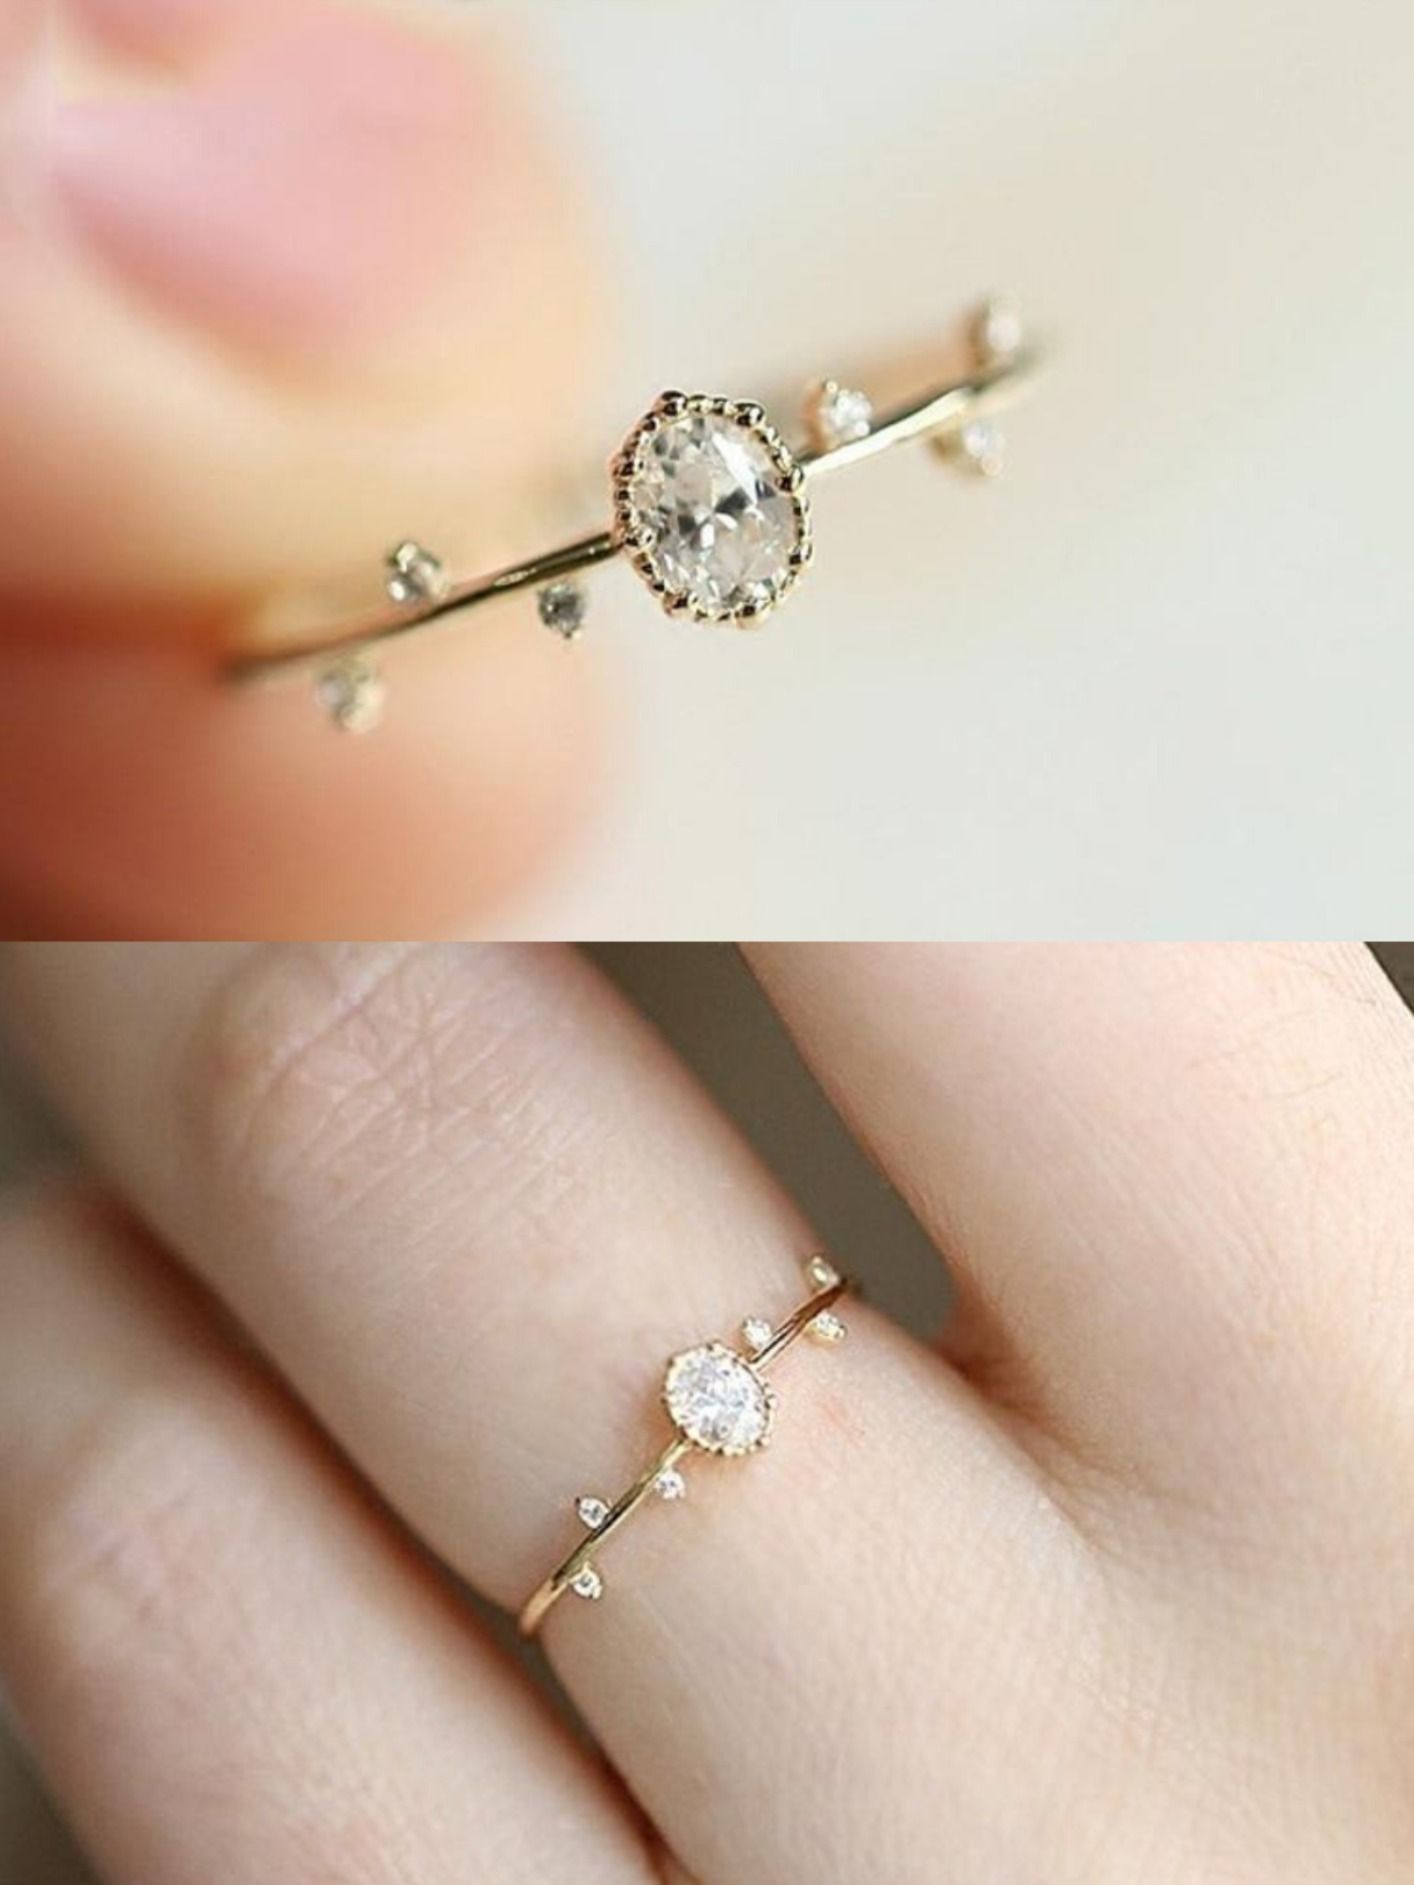 Free Shipping Rings Jewelry Ring Earrings Jewellery Fashion Gold Necklace Love S In 2020 Cute Engagement Rings Rose Gold Engagement Ring Beautiful Bracelet